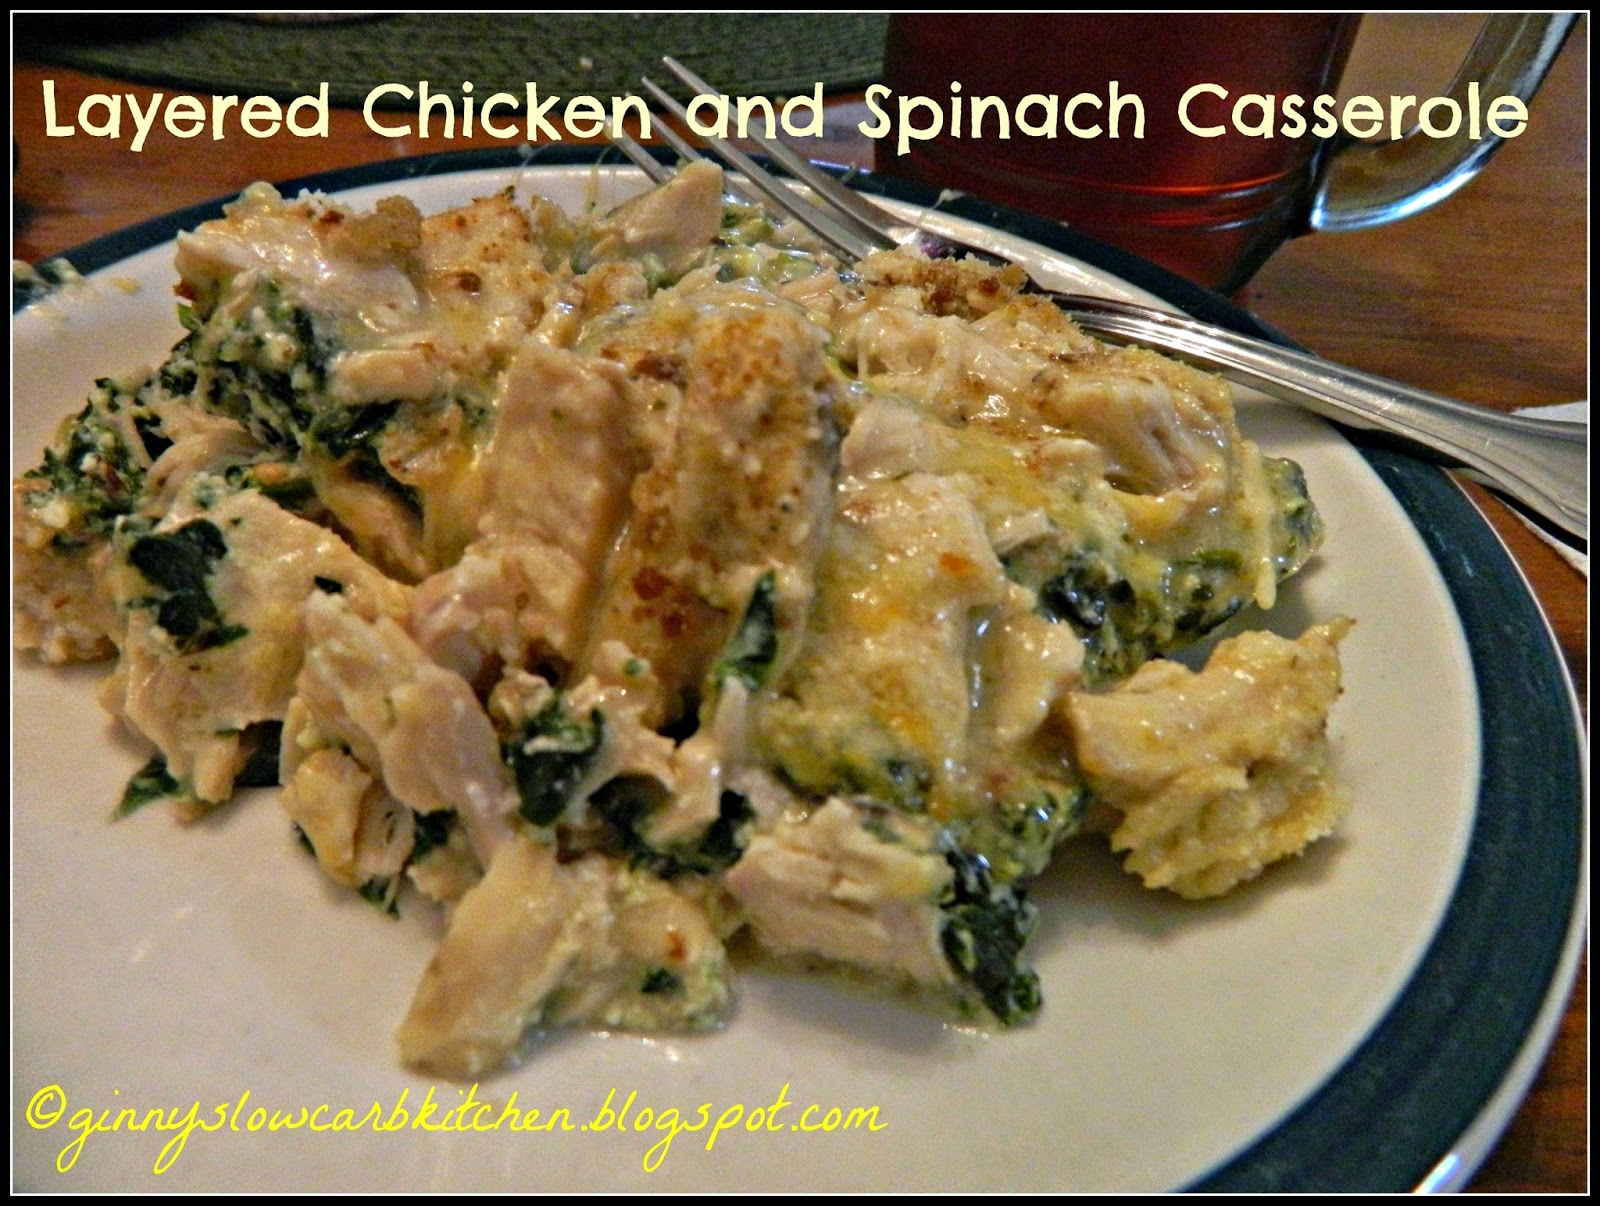 Ginny's Low Carb Kitchen: LAYERED CHICKEN AND SPINACH CASSEROLE